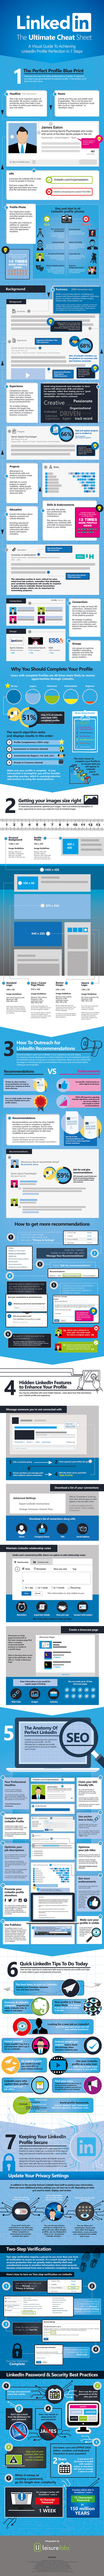 Achieve LinkedIn Profile Perfection In 7 Steps #Infographic | Great Infographics | Scoop.it